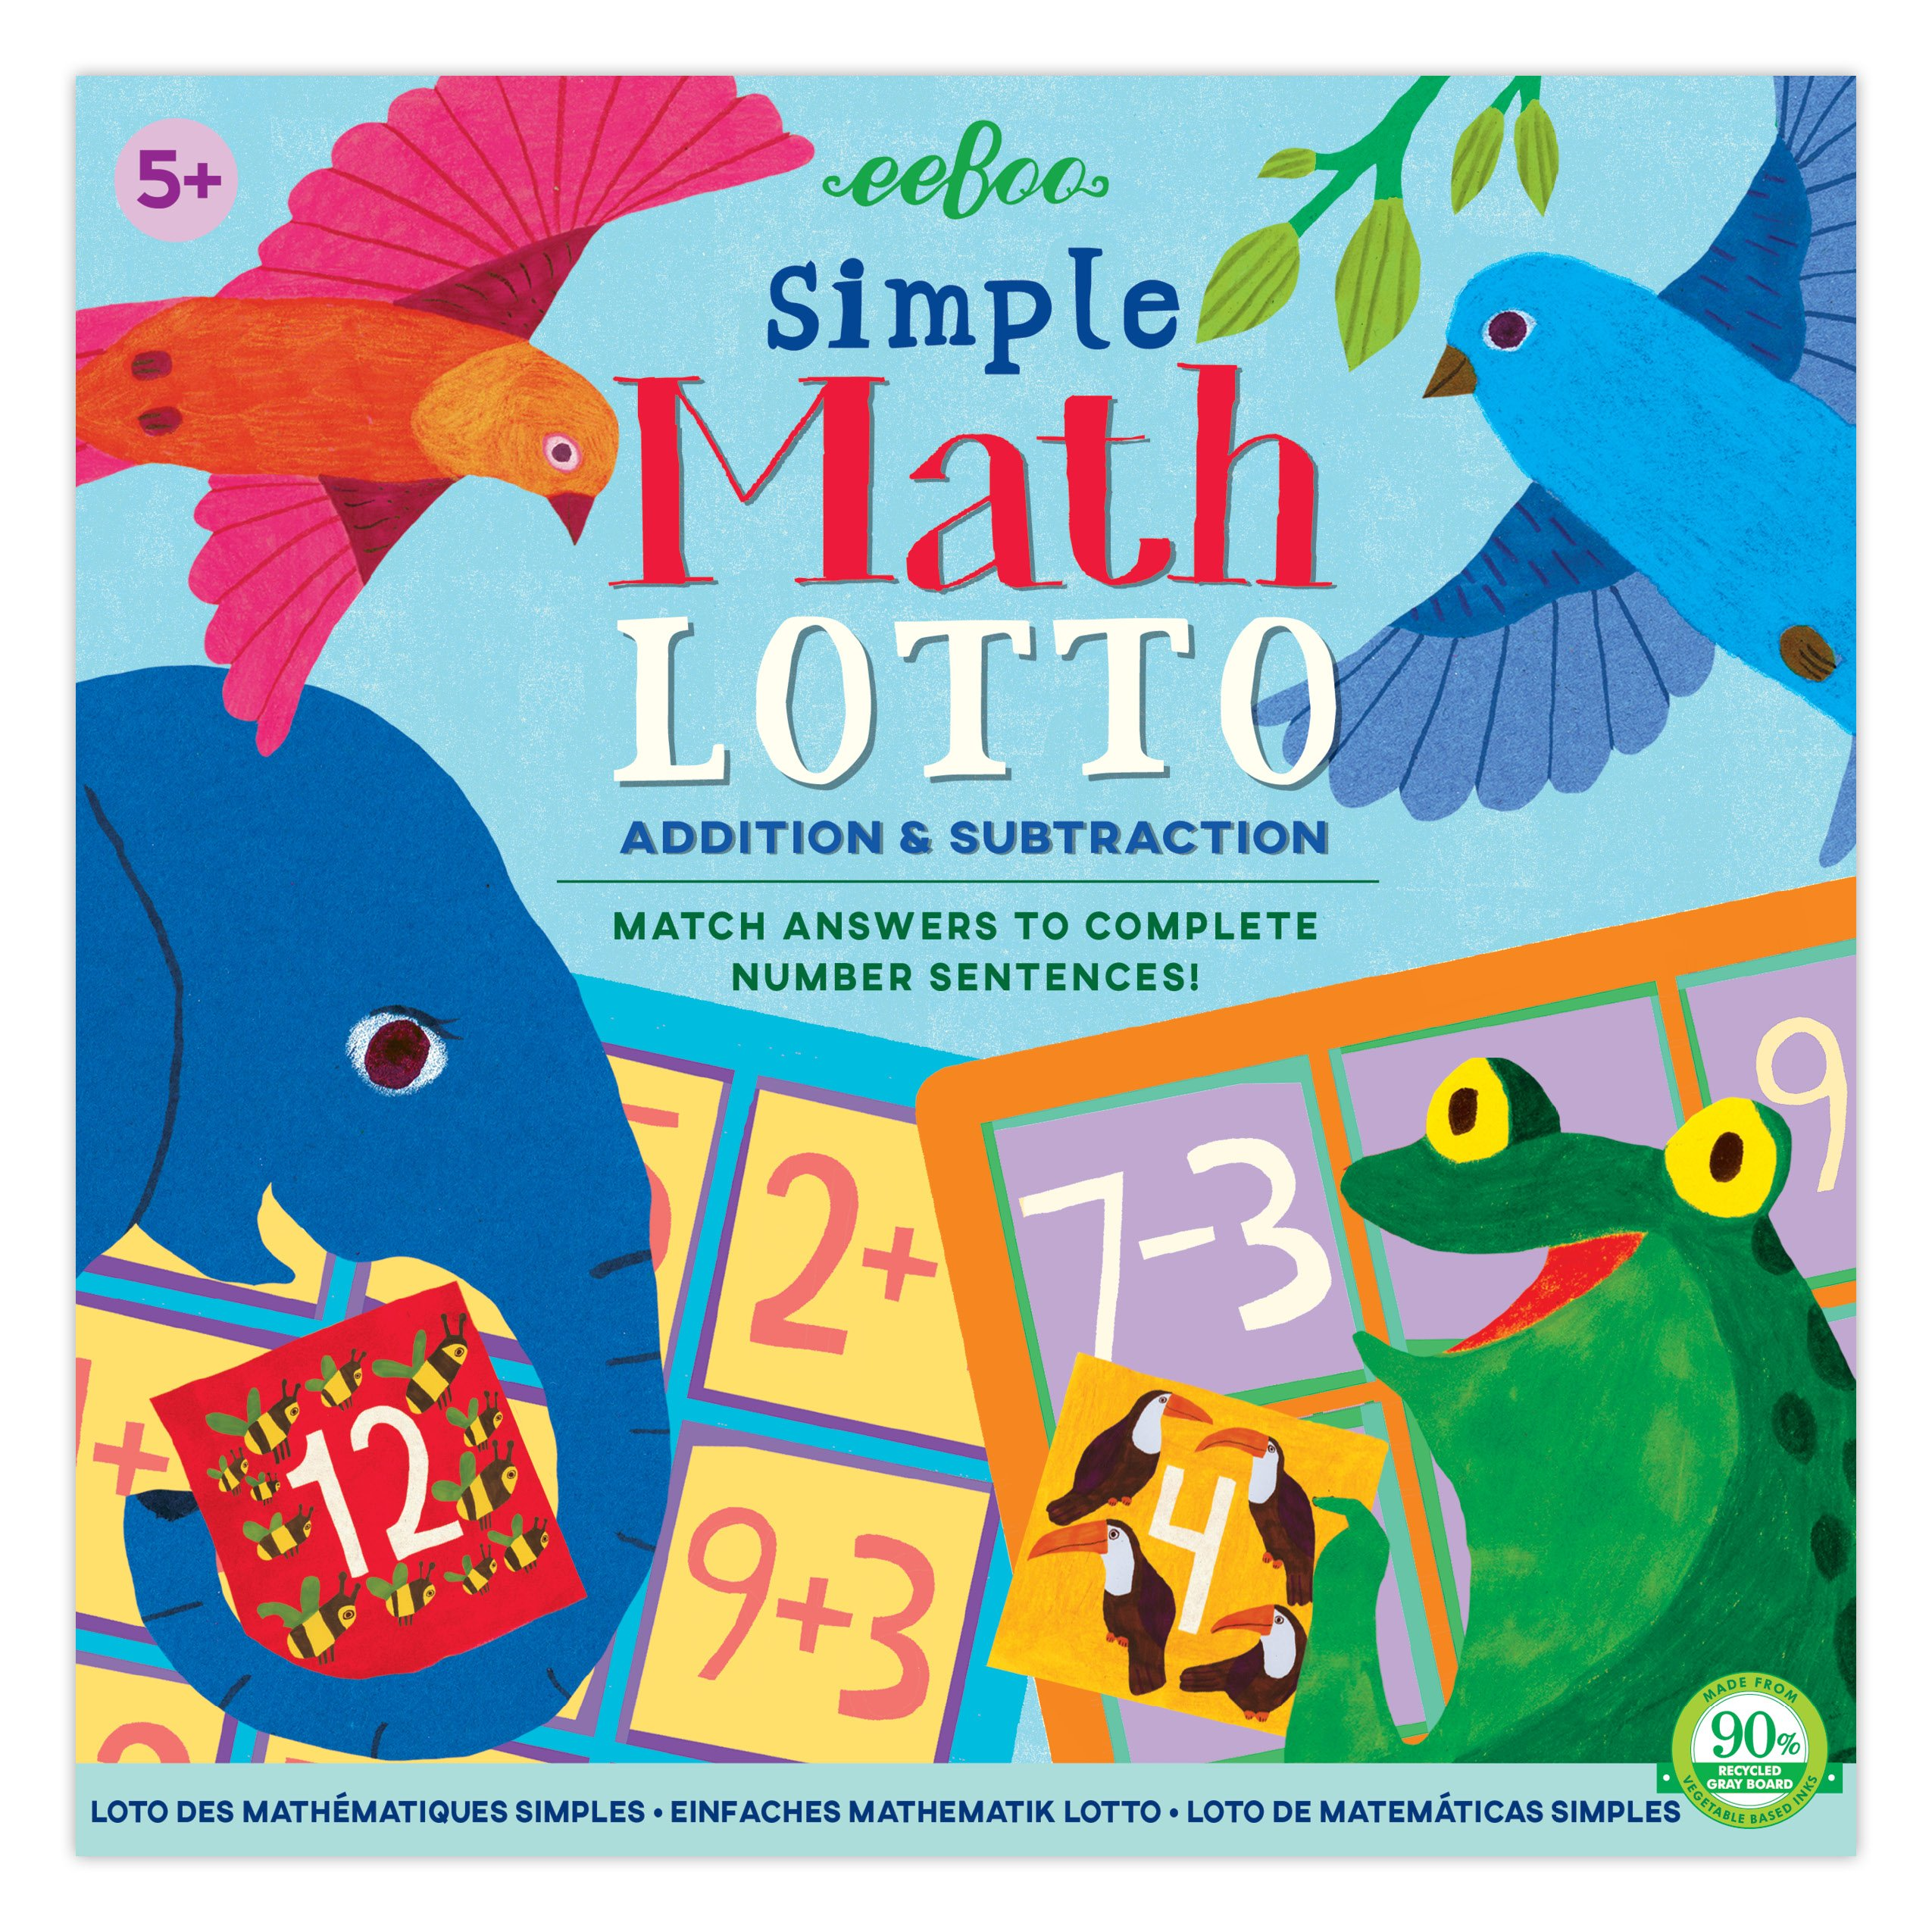 eeBoo Simple Math Bingo Lotto Game, Addition and Subtraction